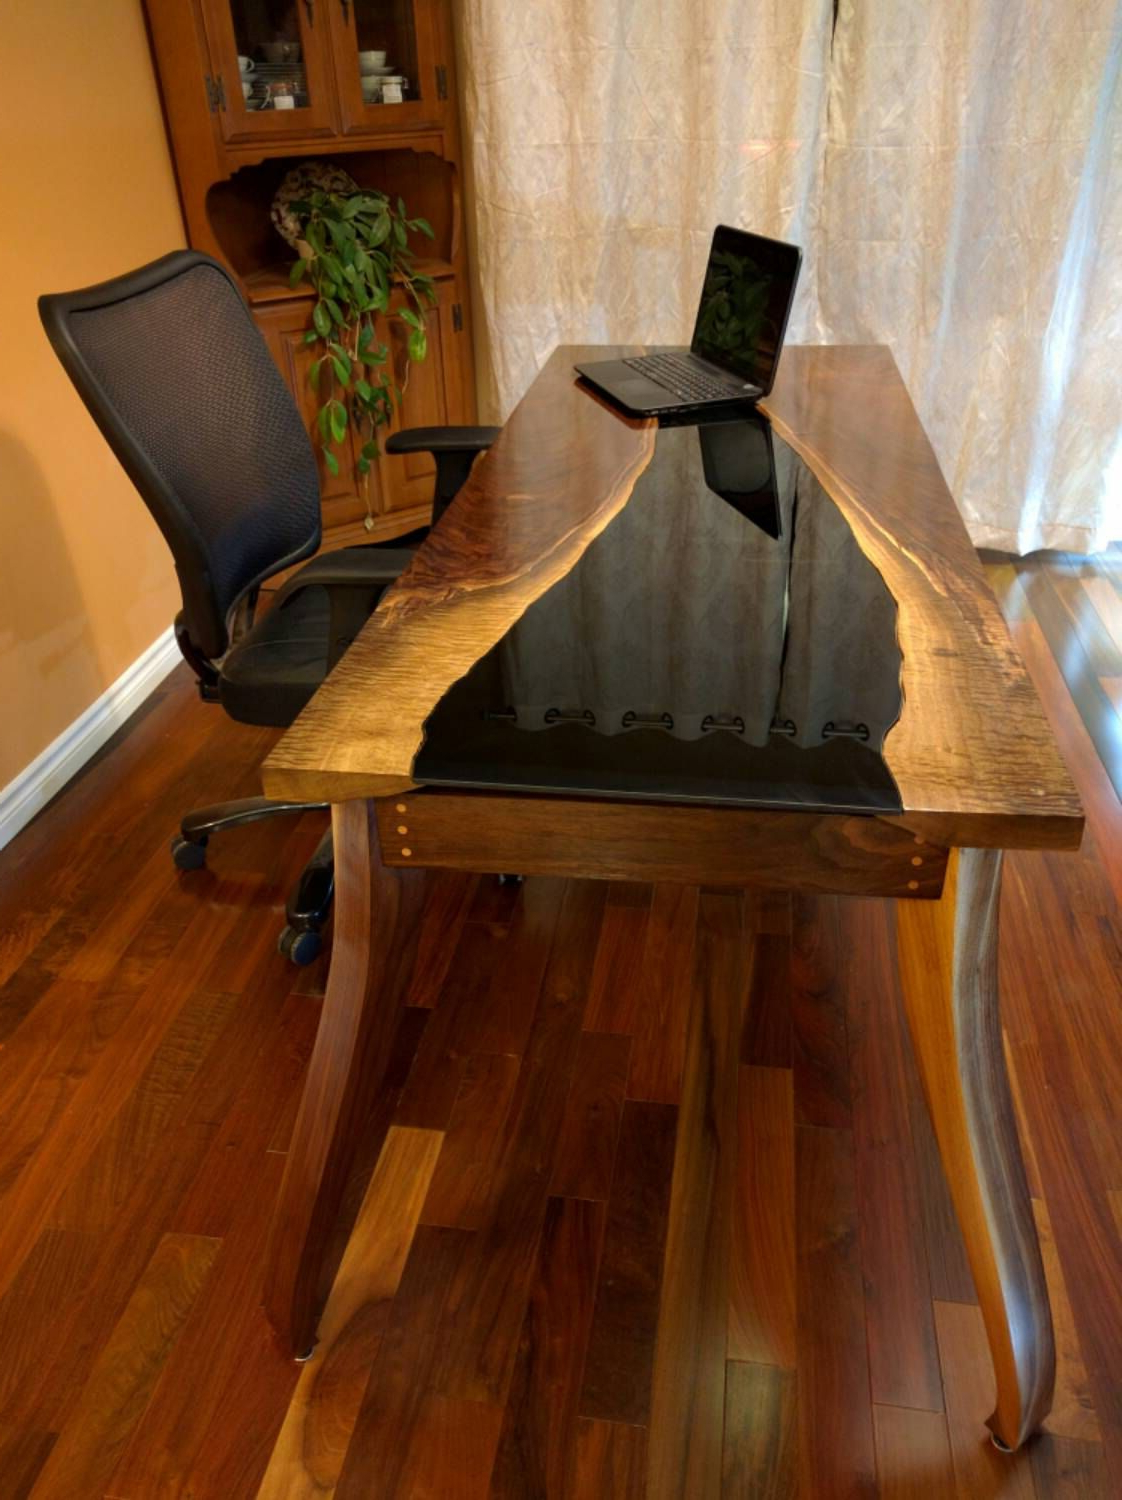 Walnut Finish Live Edge Wood Contemporary Dining Tables Intended For Popular Executive Desk Walnut Table Natural Live Edge Black Modern (View 21 of 25)